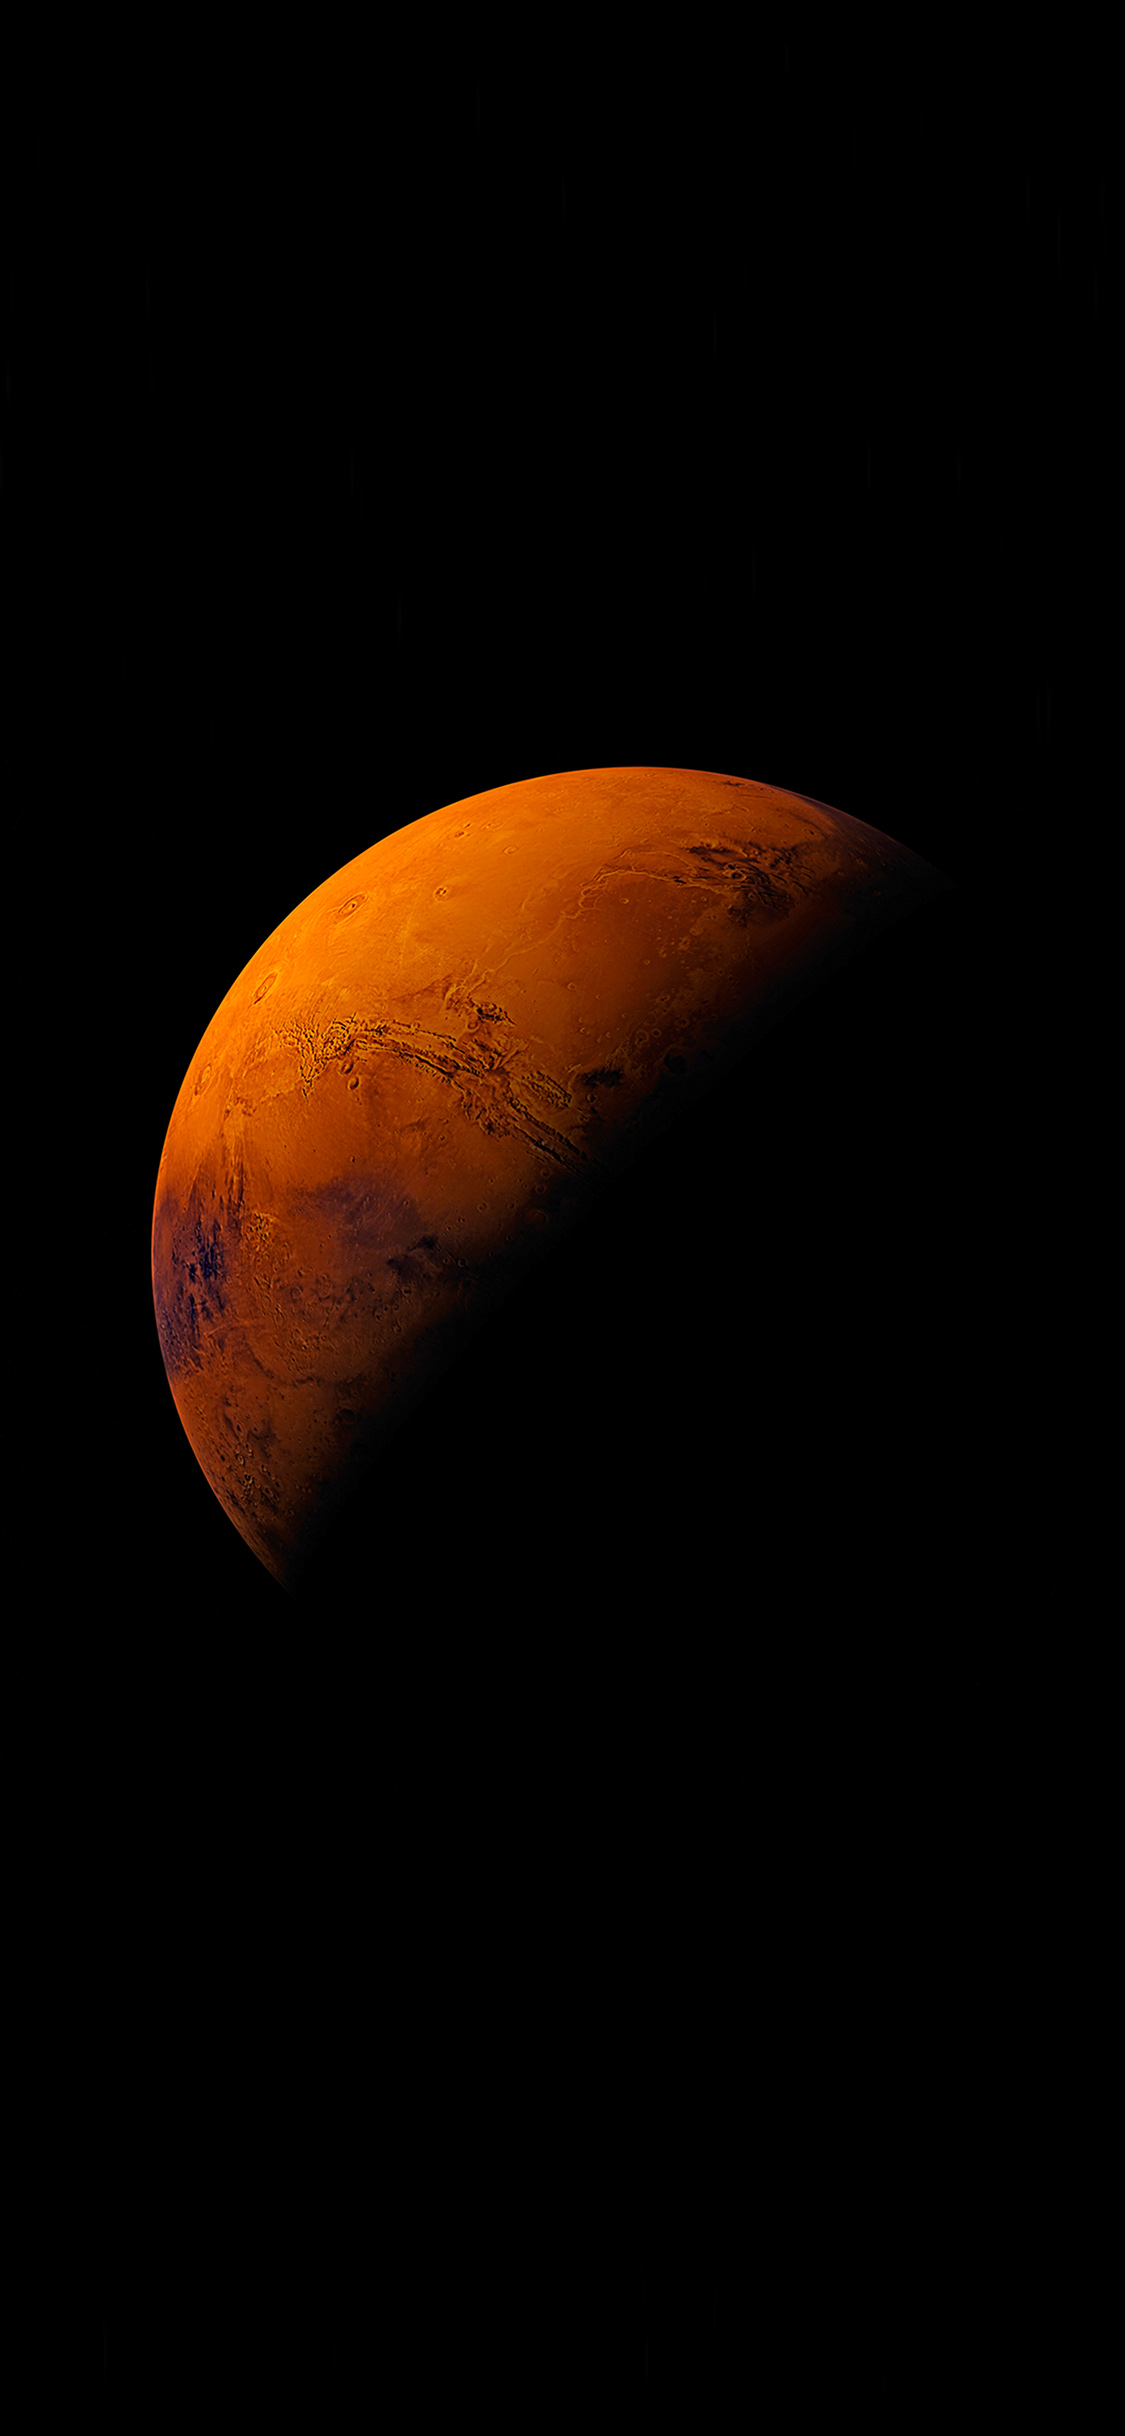 Iphone11papers Com Iphone11 Wallpaper An62 Mars Planet Apple Dark Space Orange